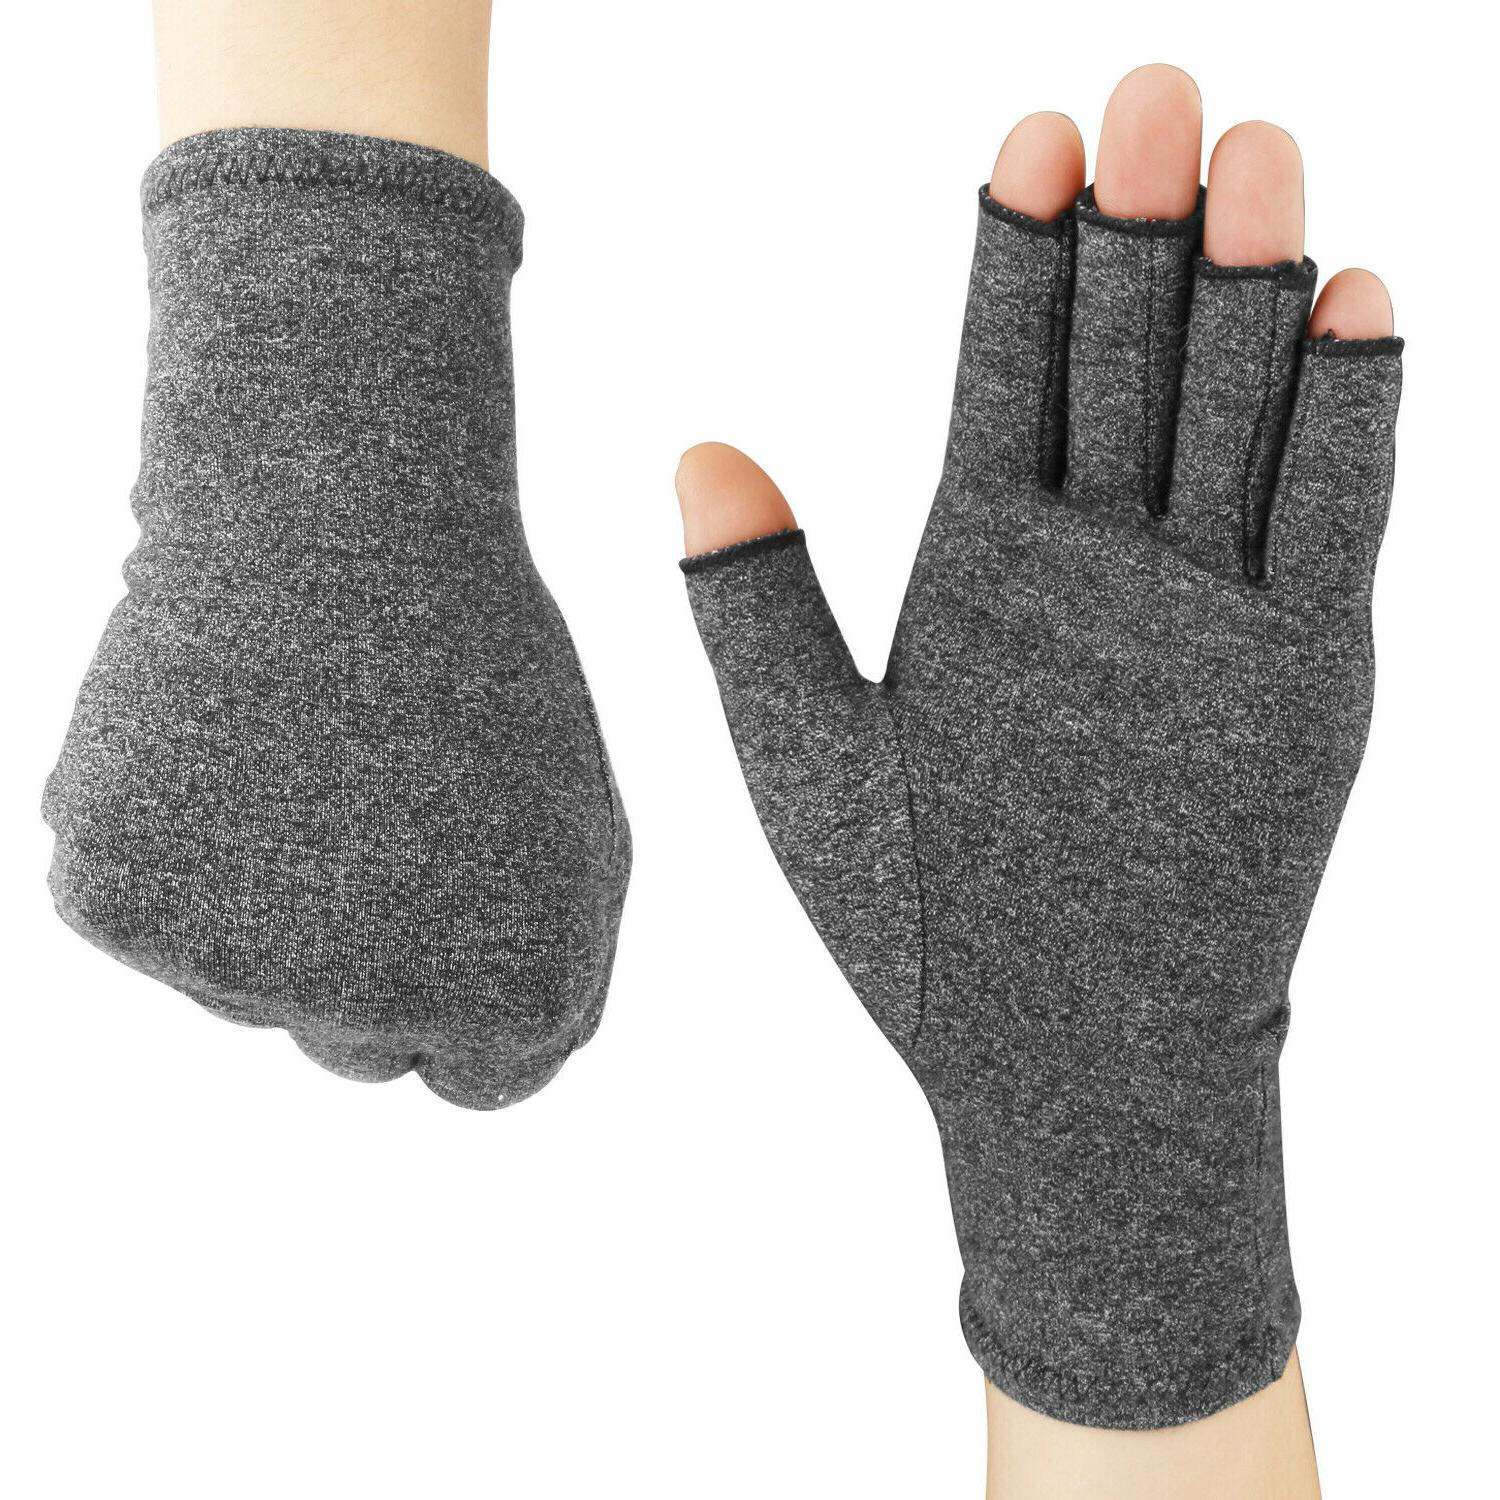 Arthritis Compression Gloves Carpal Tunnel Support